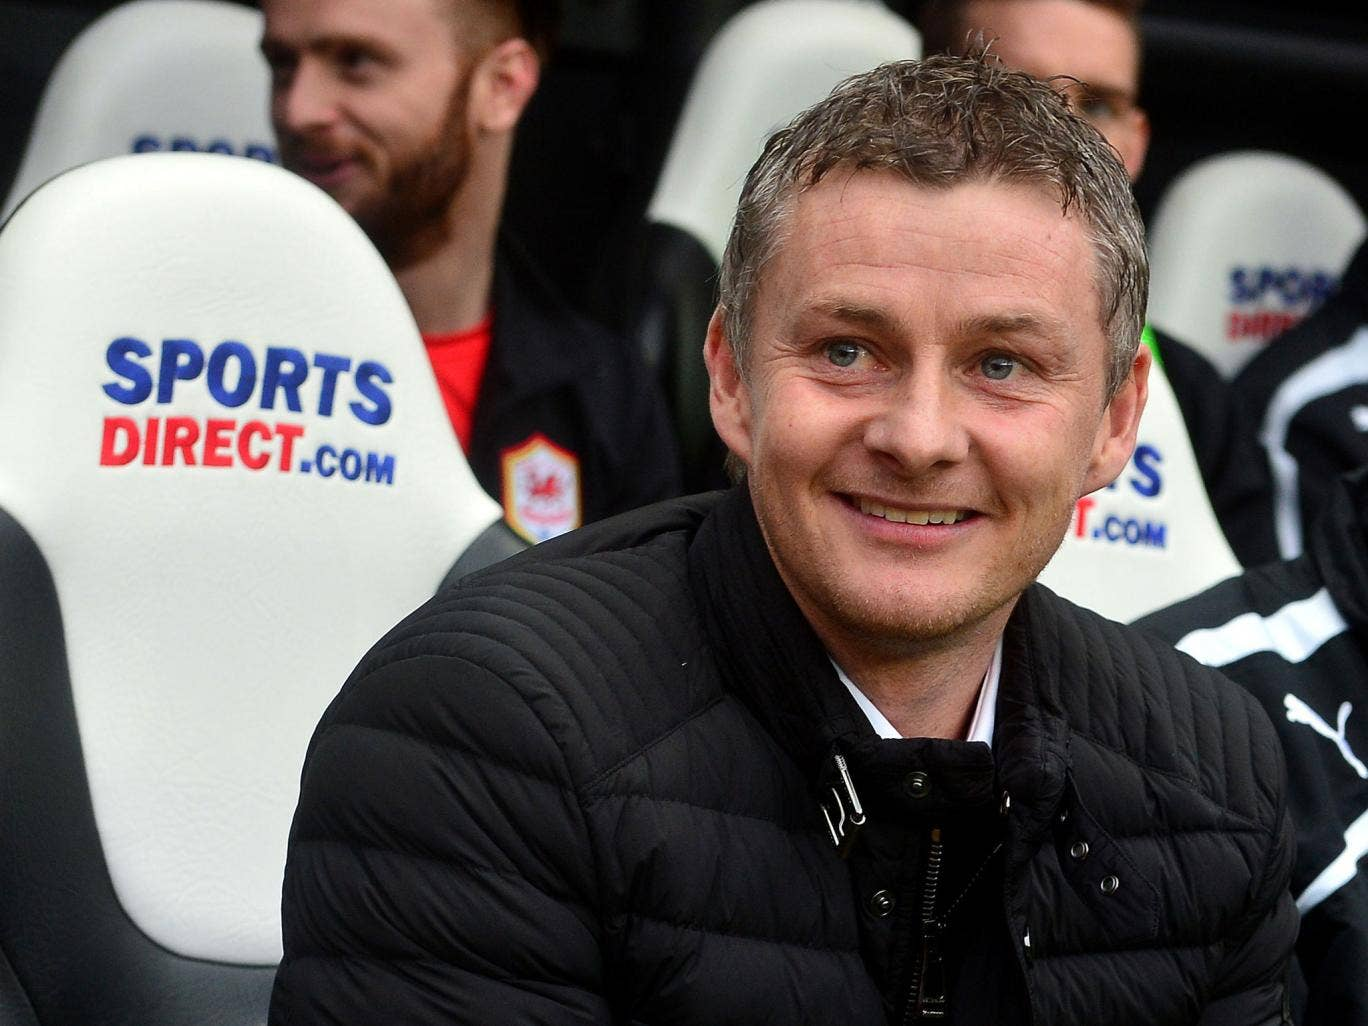 Ole Gunnar Solskjaer said he had not spoken to Sir Alex Ferguson since taking over at Cardiff City